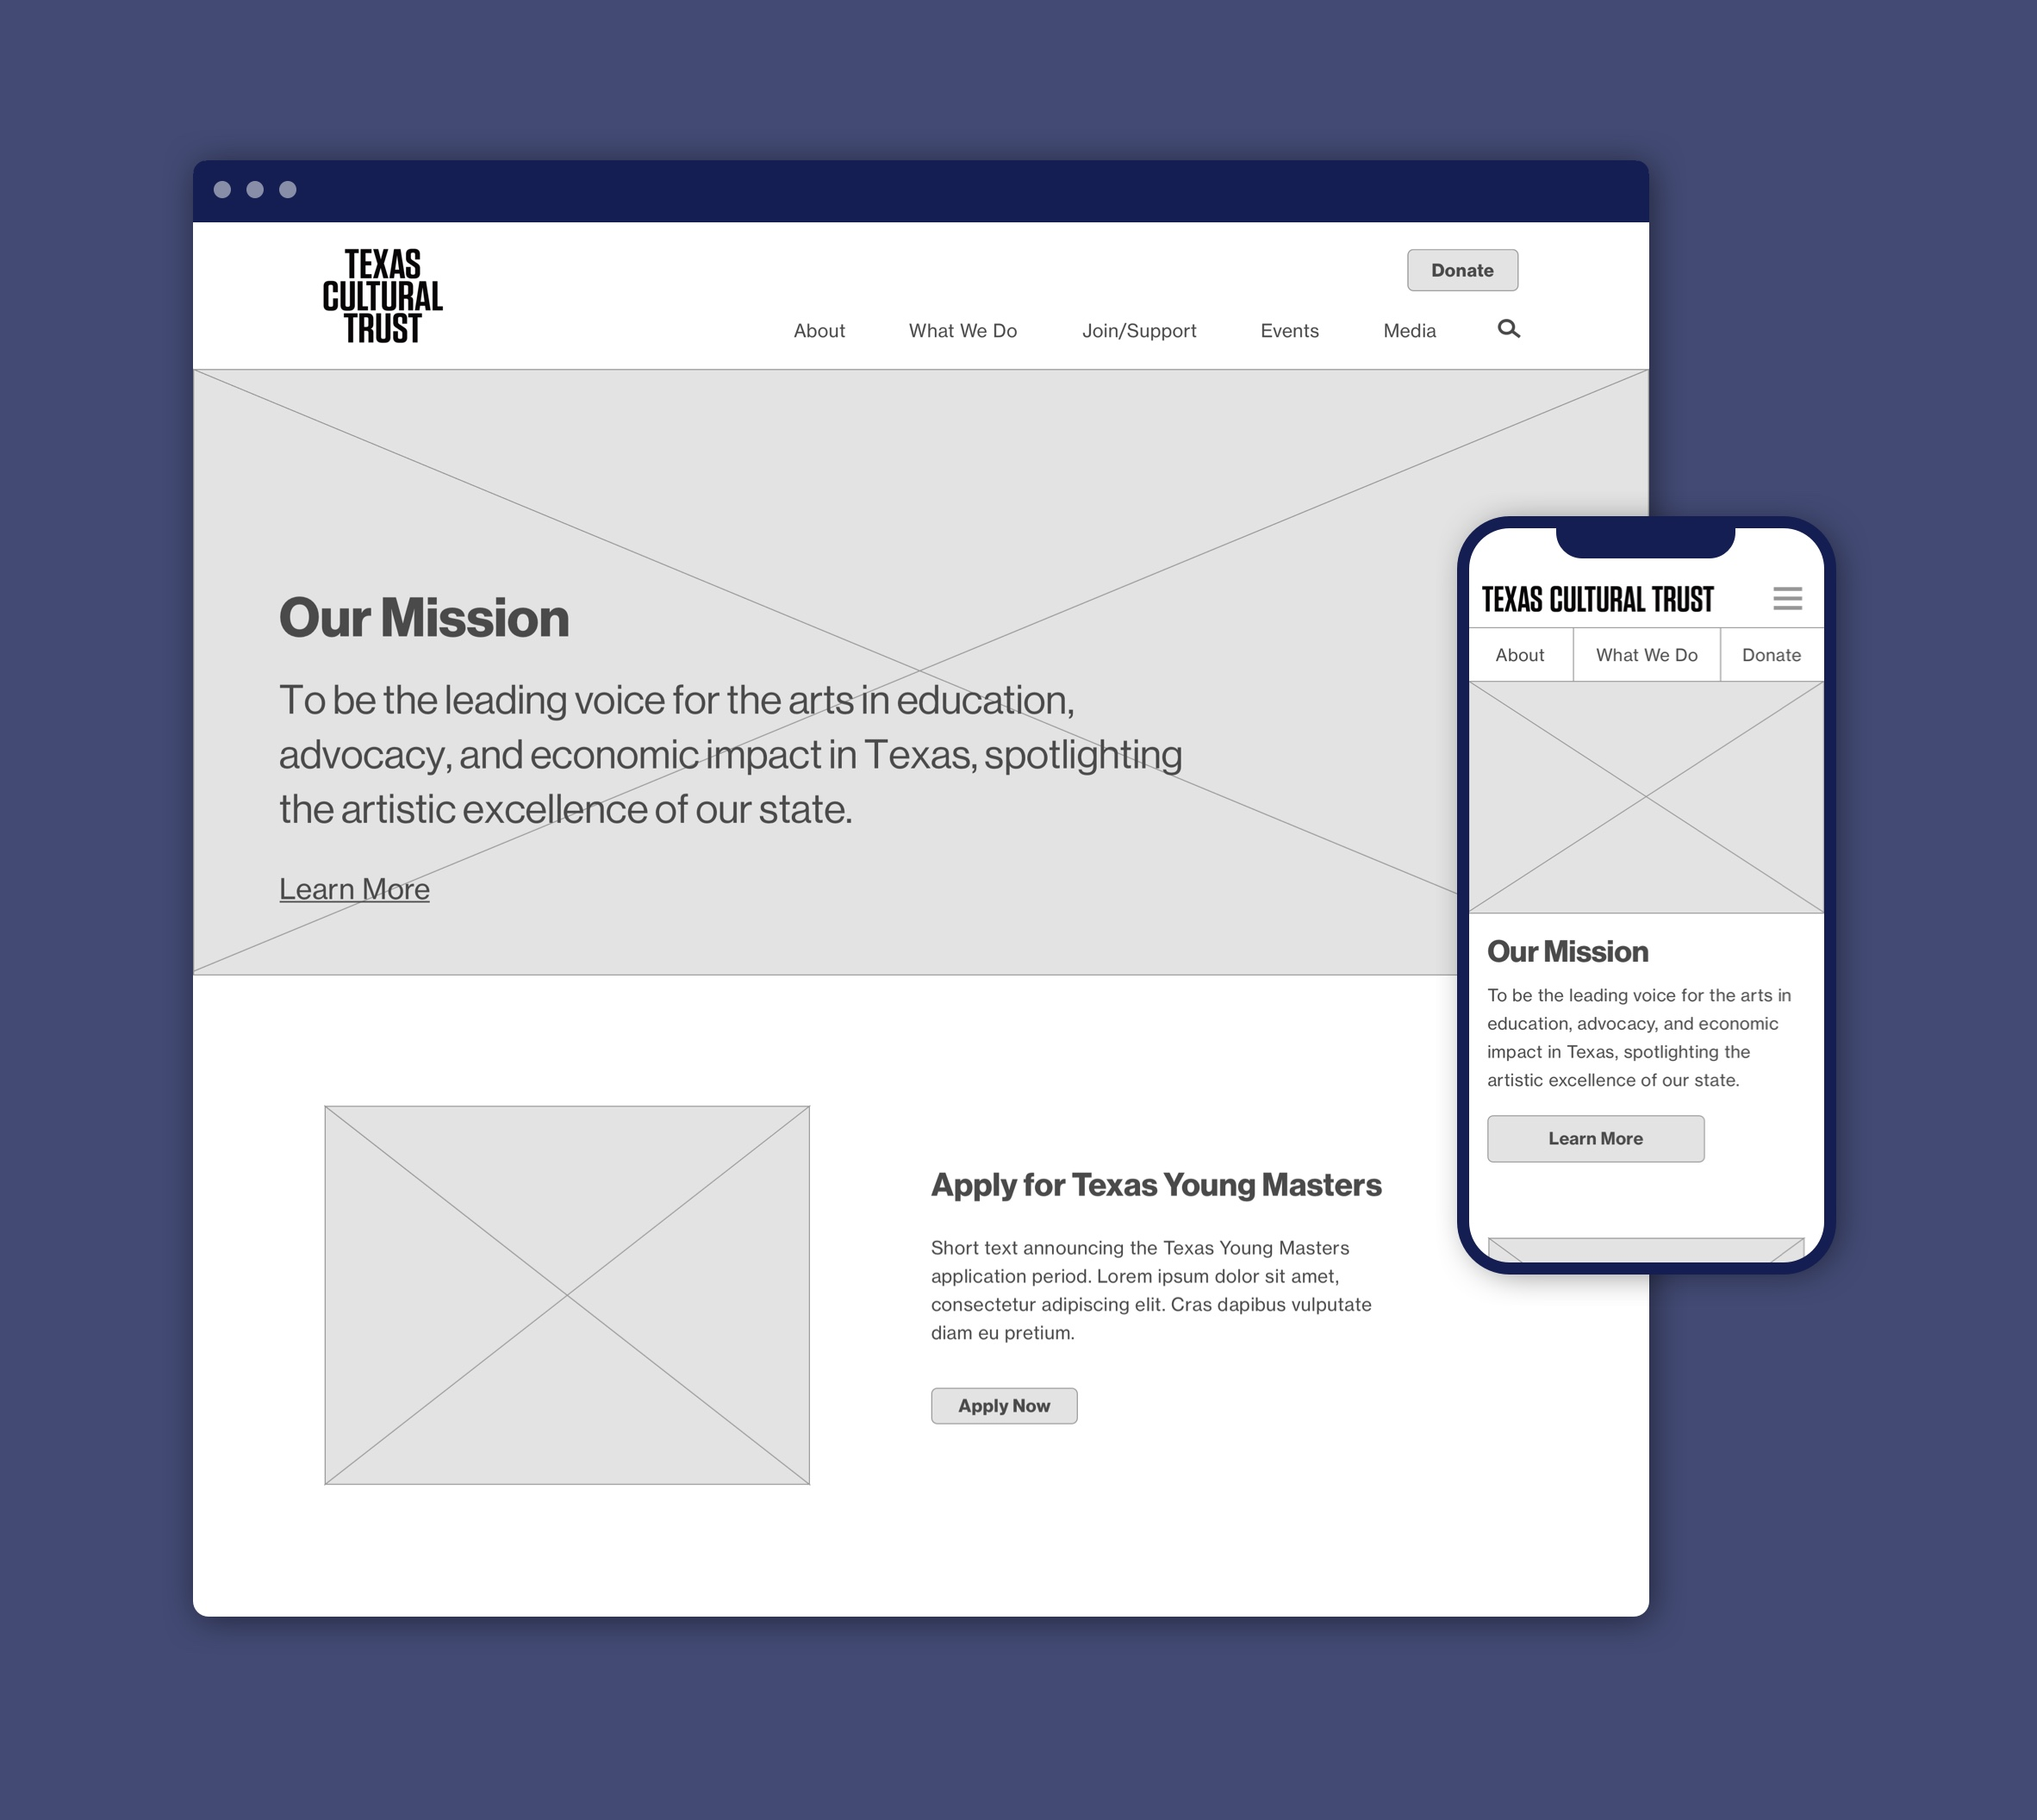 partial desktop and mobile wireframes for the homepage